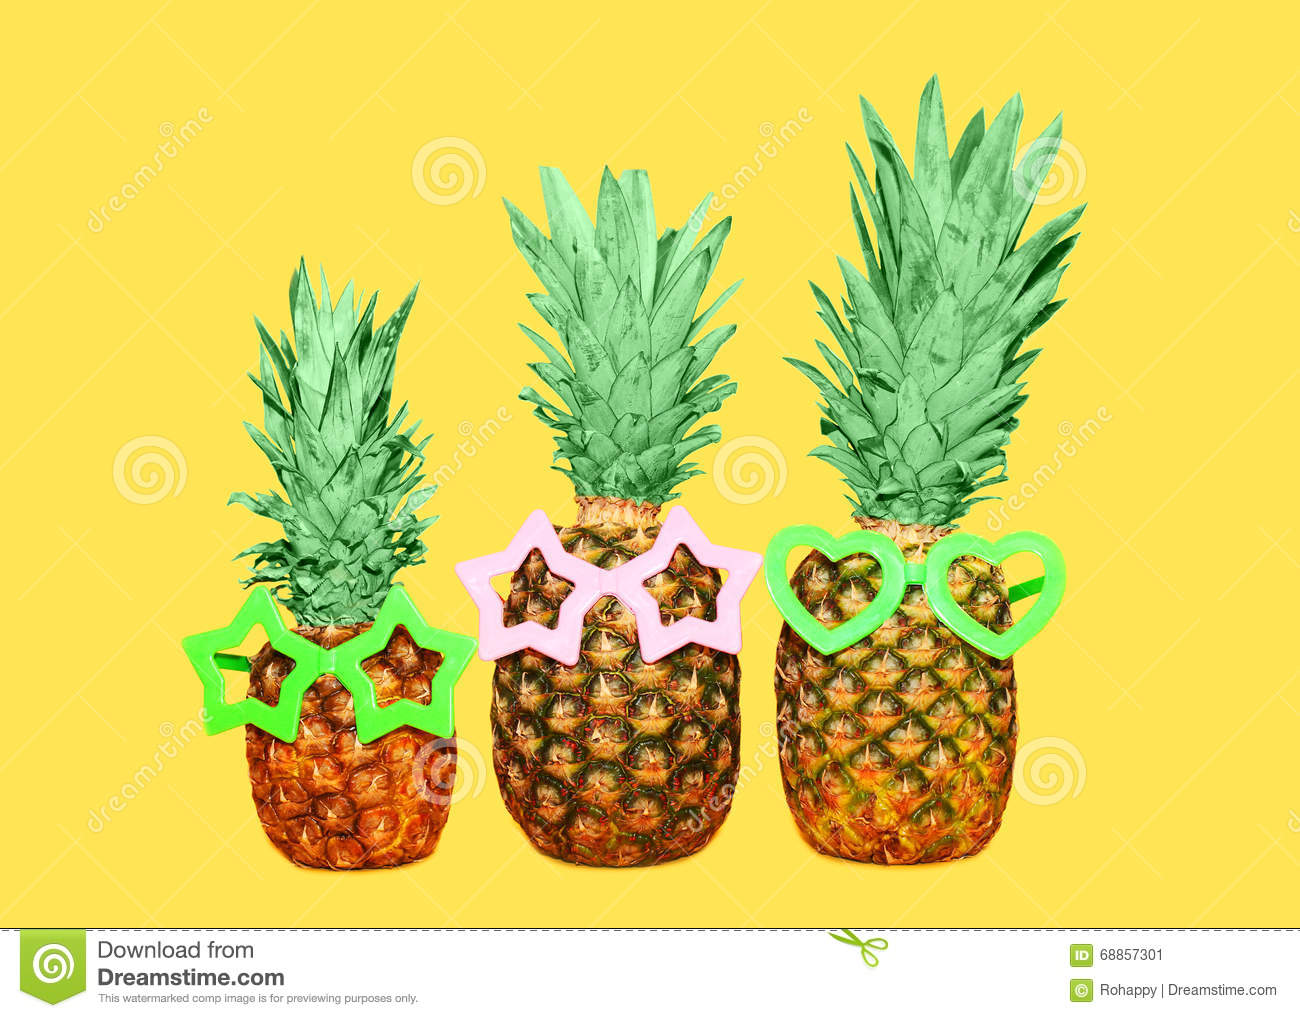 colorful pineapple background. royalty-free stock photo. download three pineapple and sunglasses on yellow background, colorful background